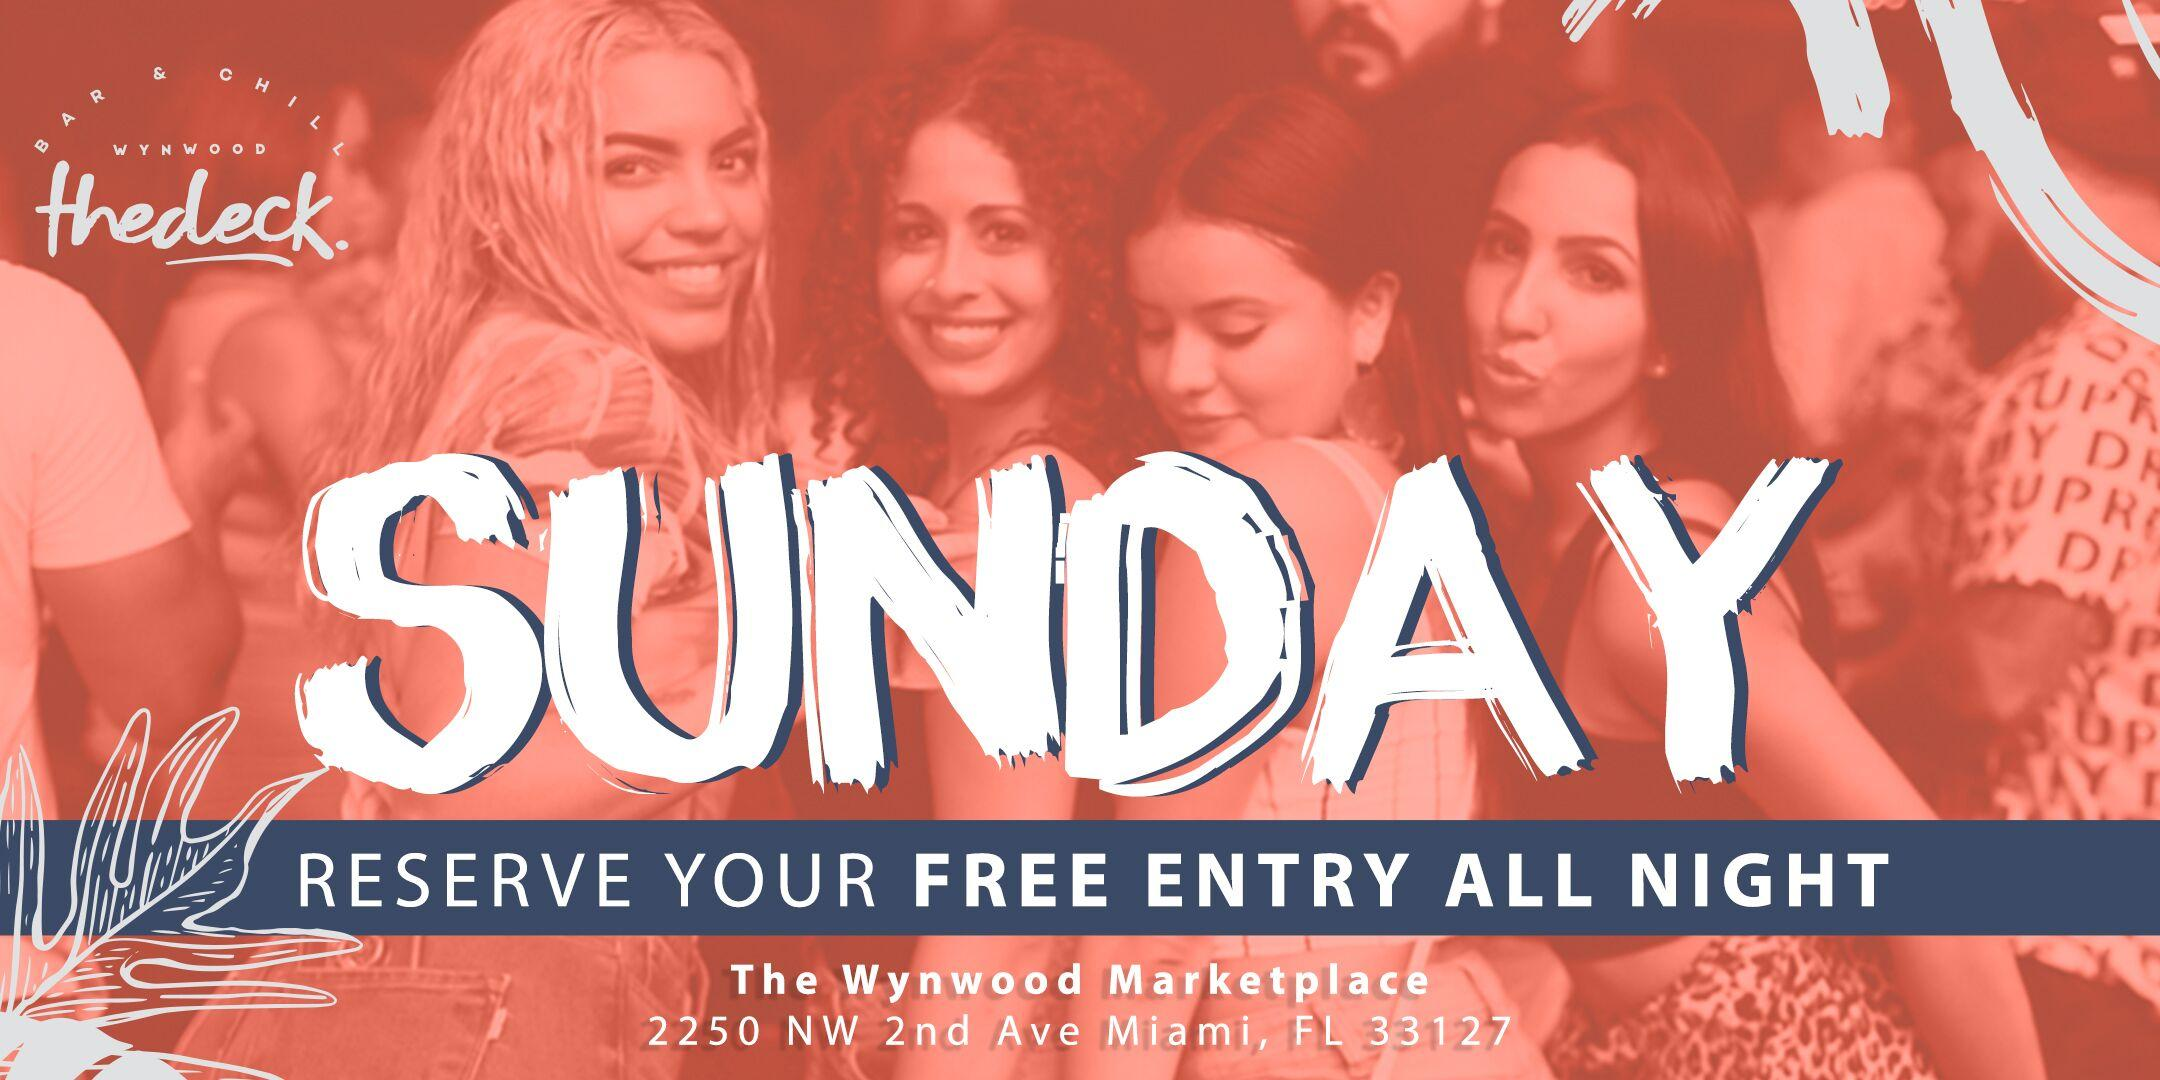 Sundays at thedeck in The Wynwood Marketplace